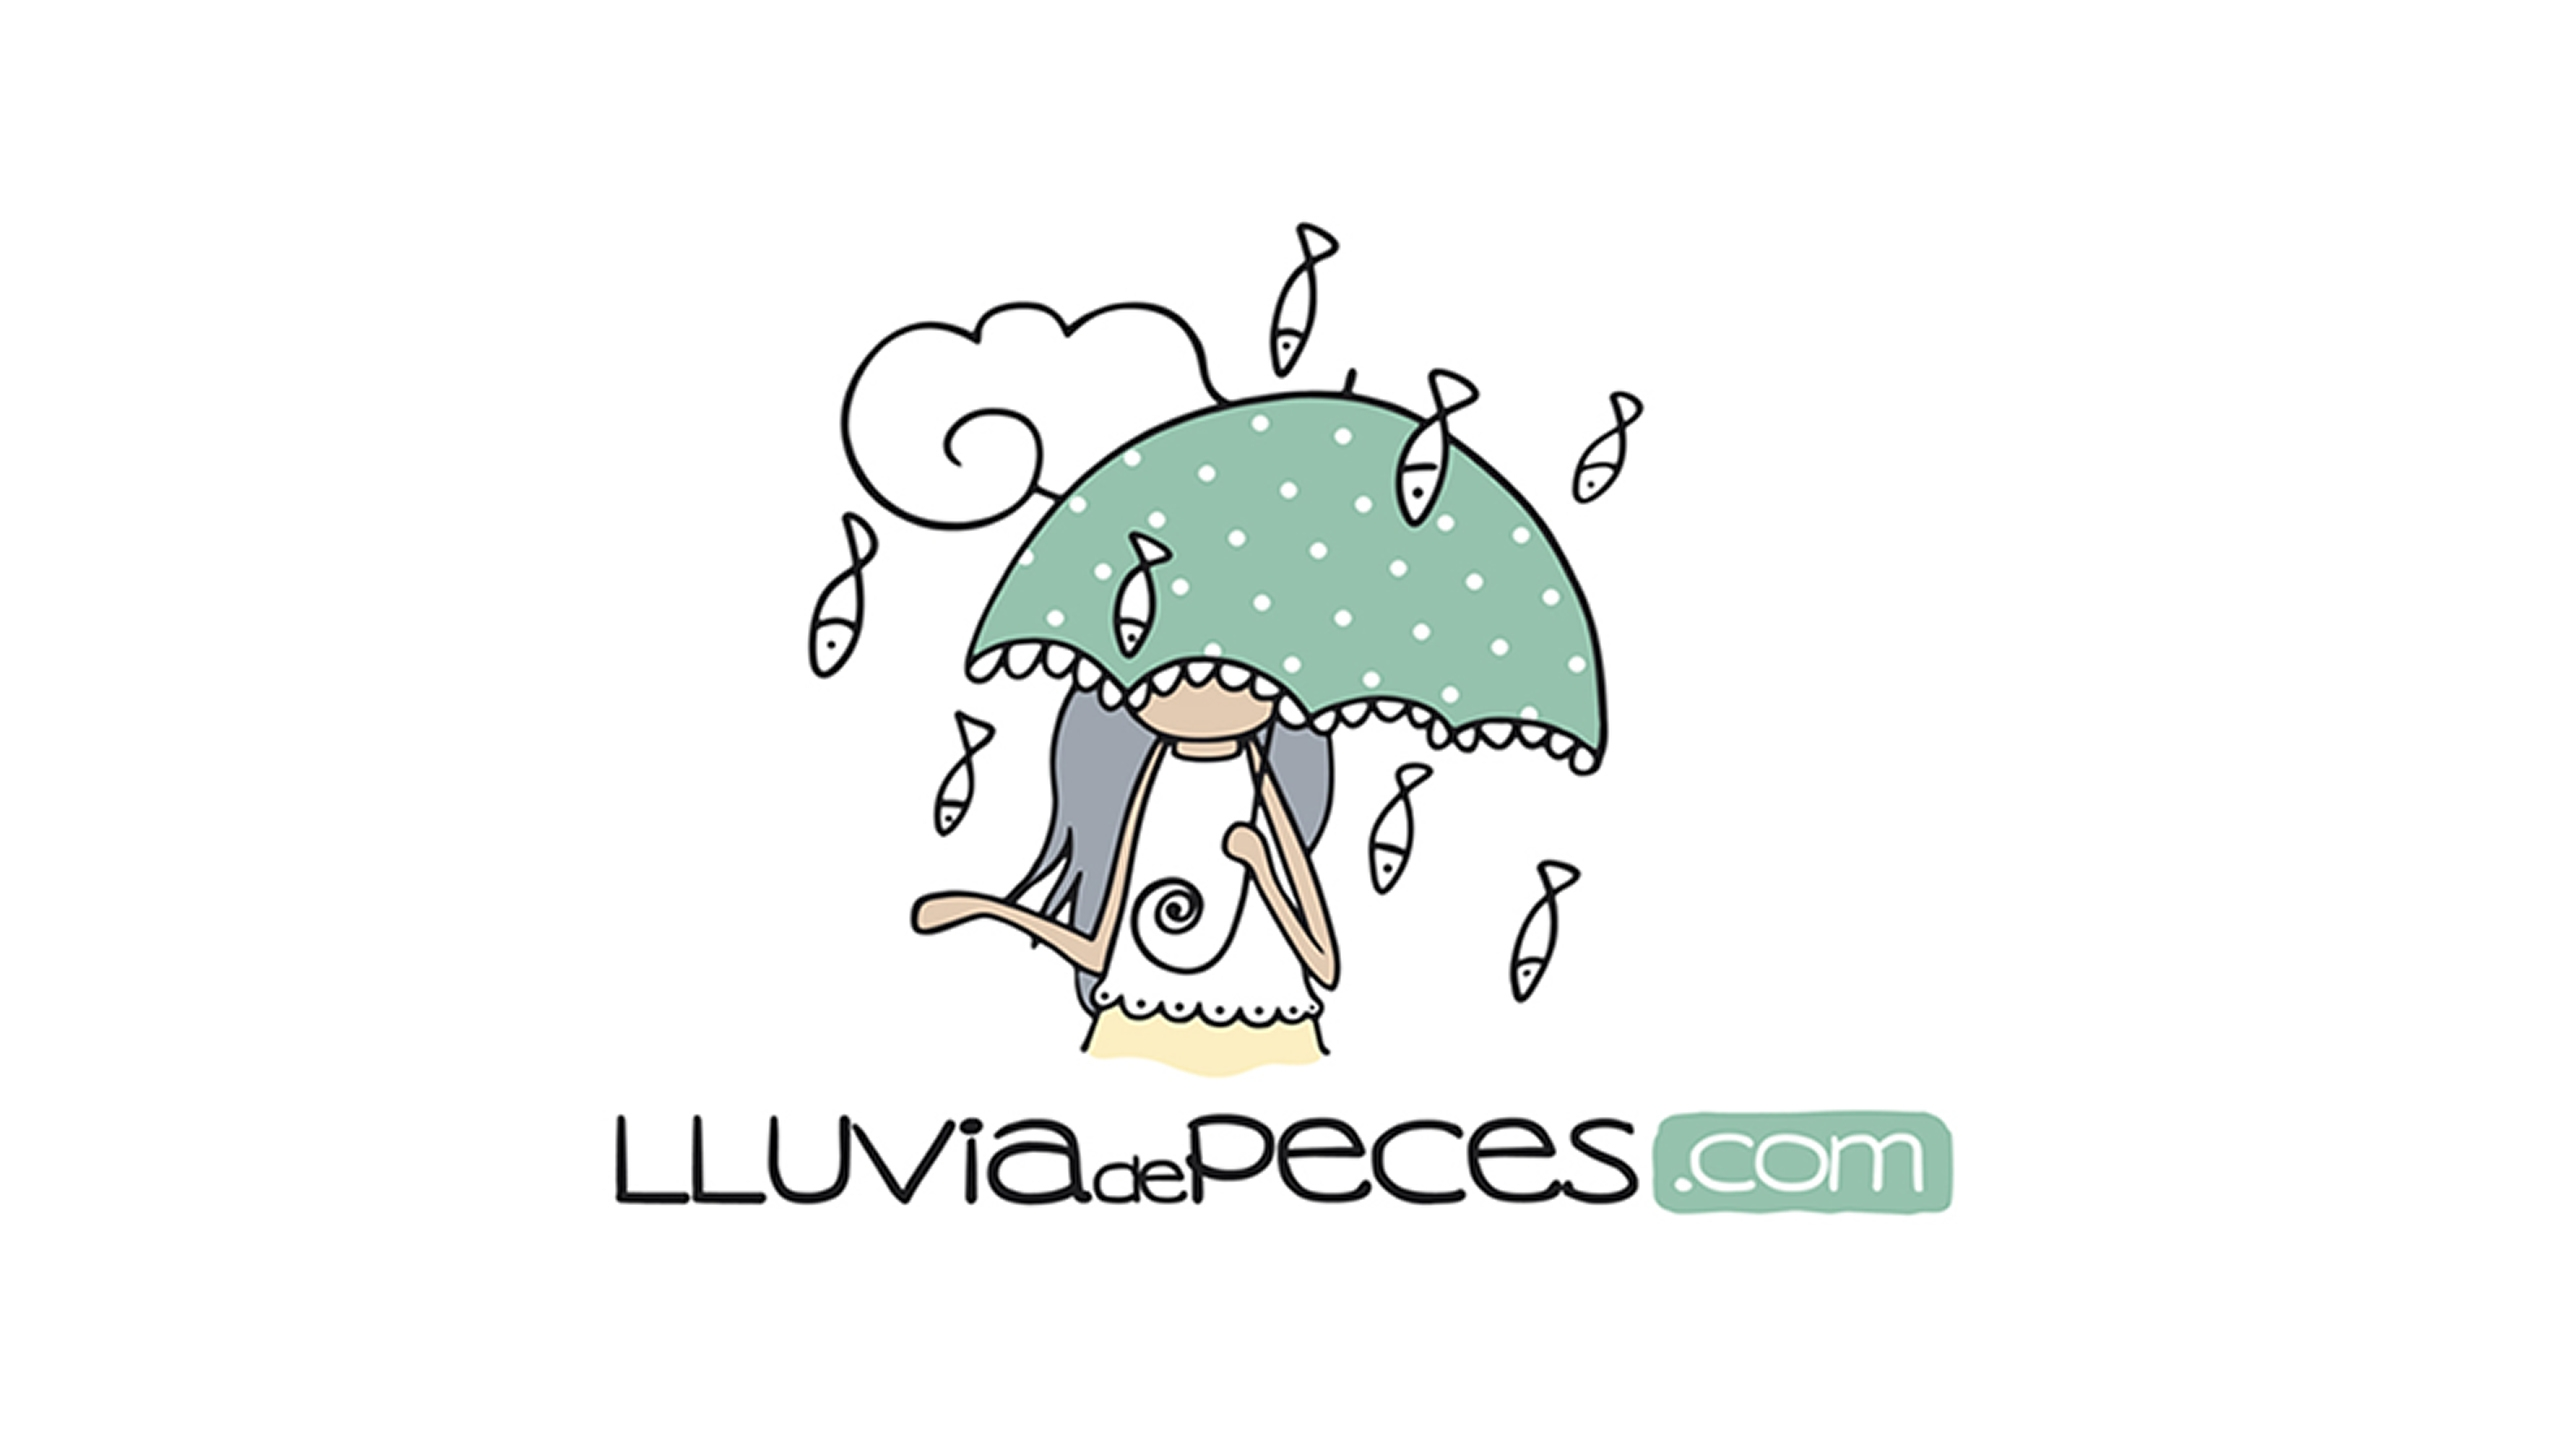 lluviadepeces (@lluviadepeces) Cover Image